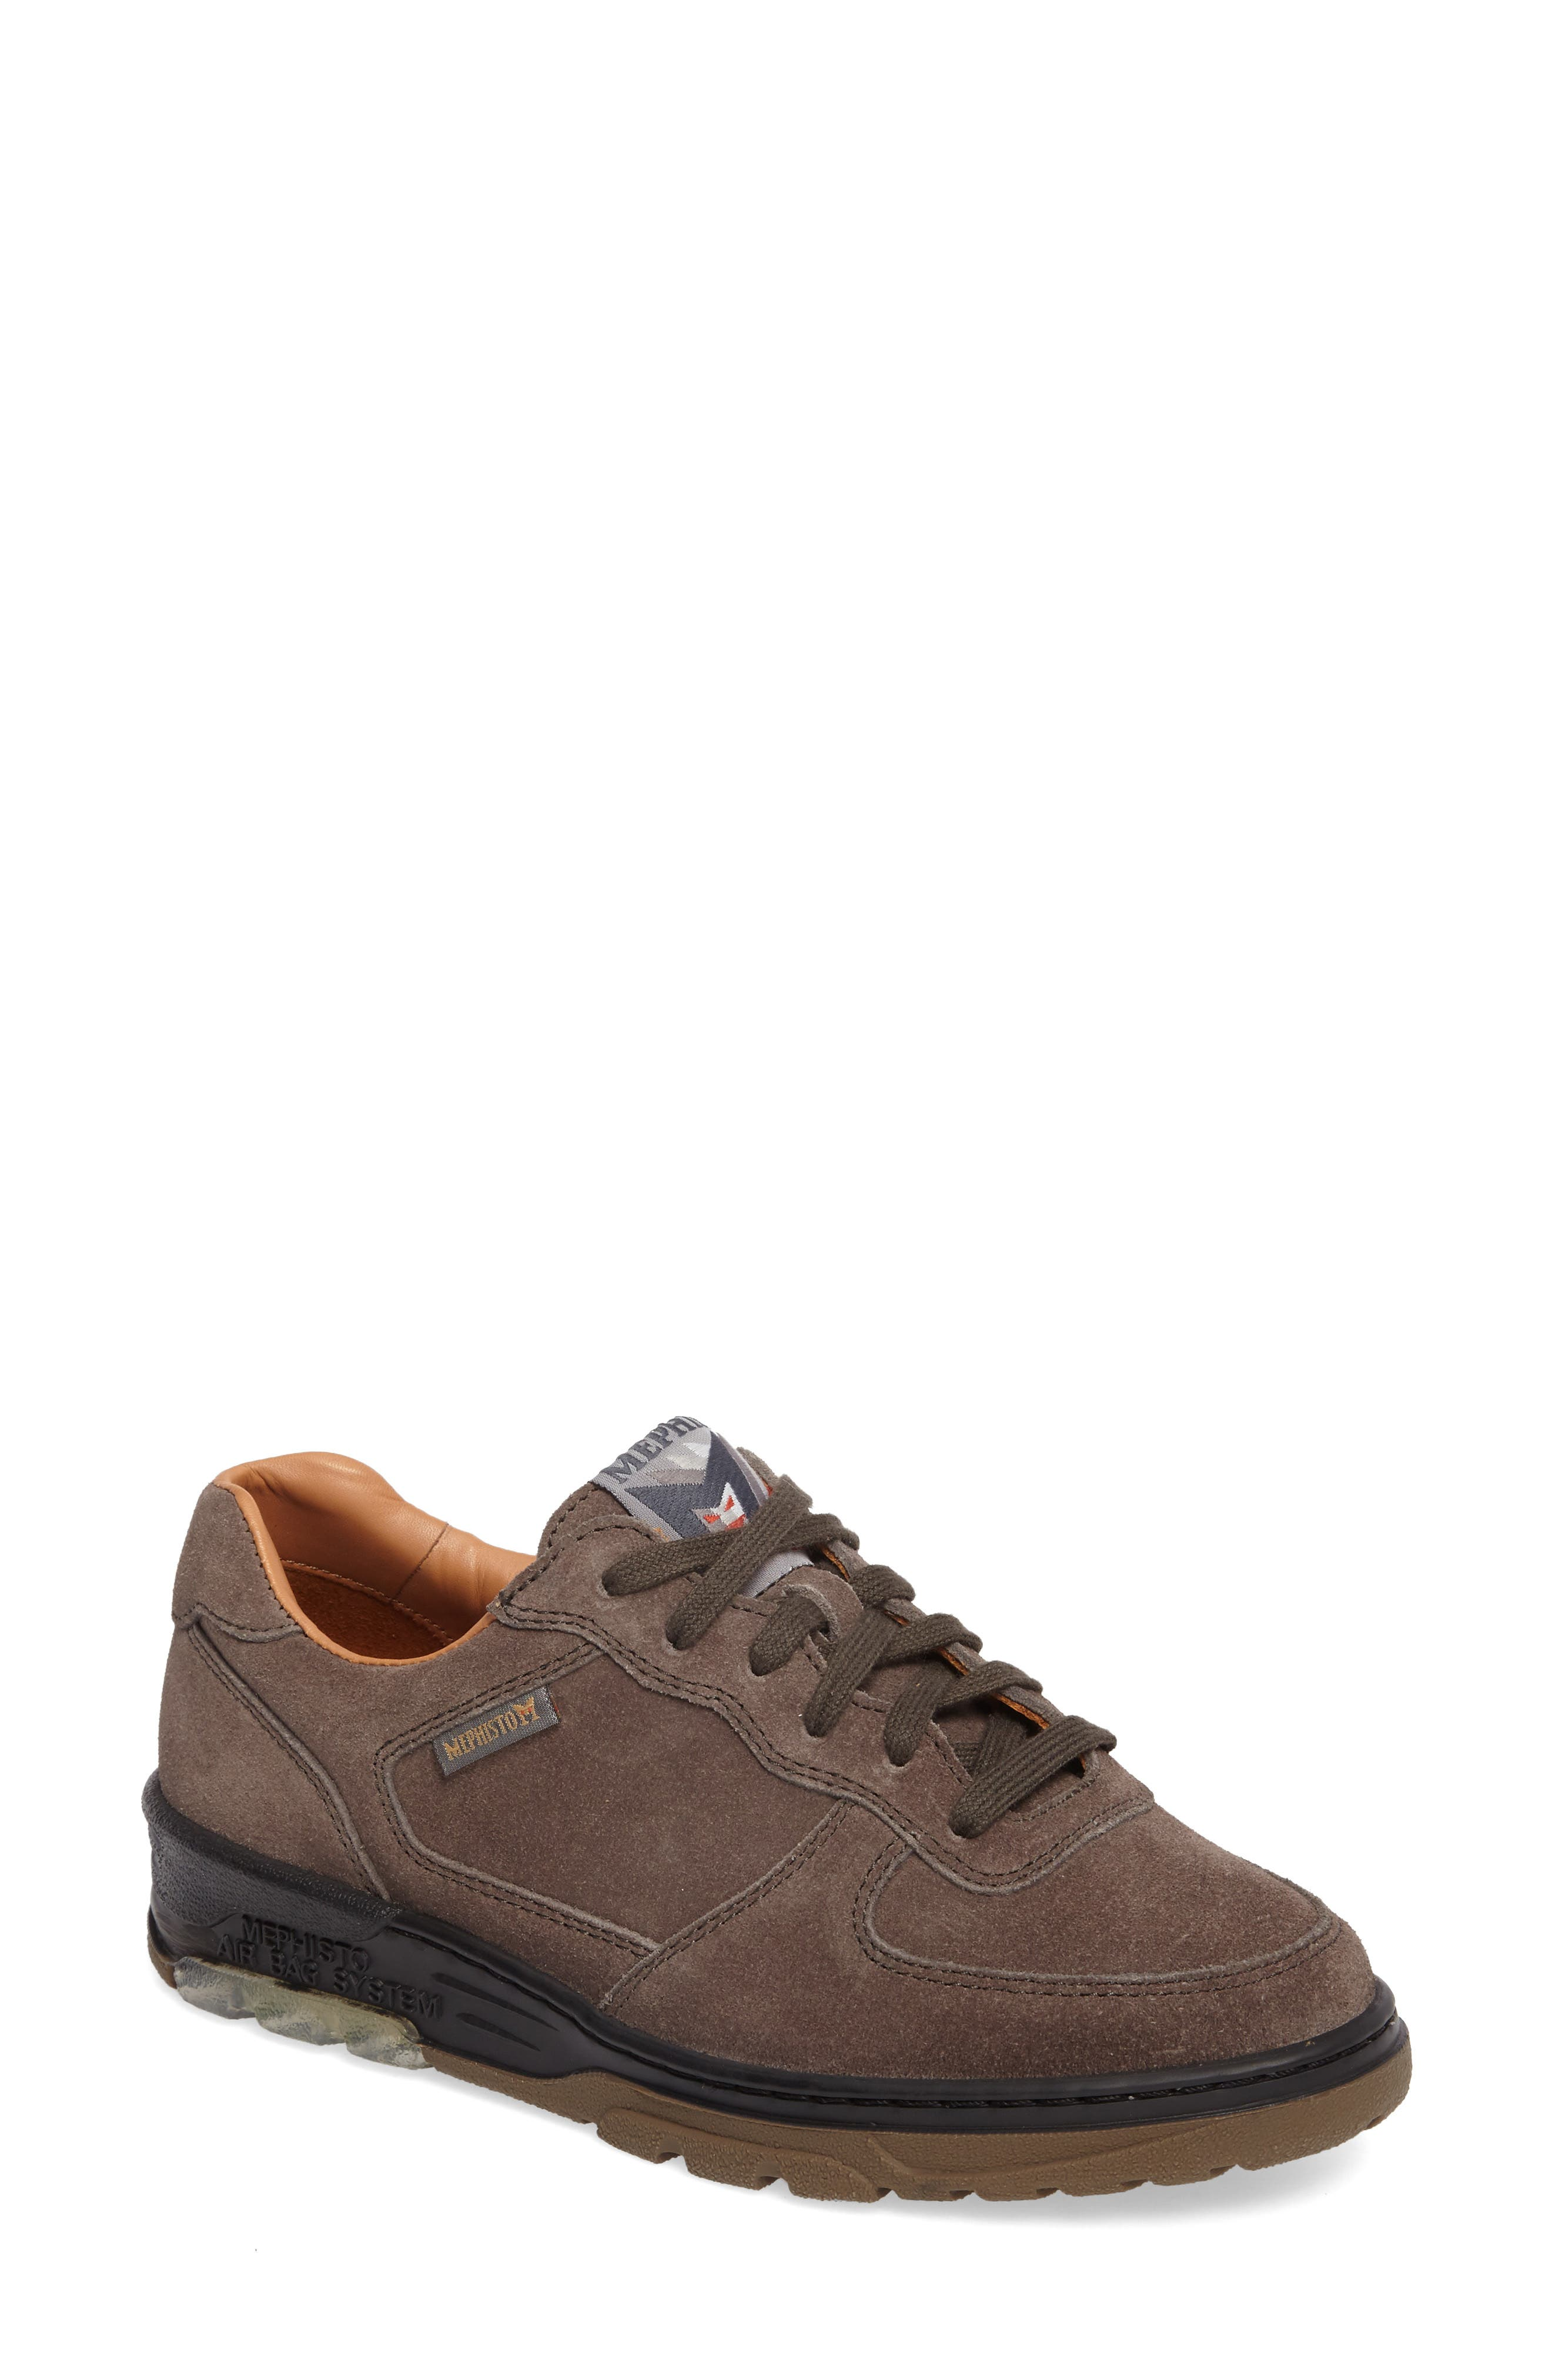 Nykita Sneaker,                         Main,                         color, Dark Grey Suede